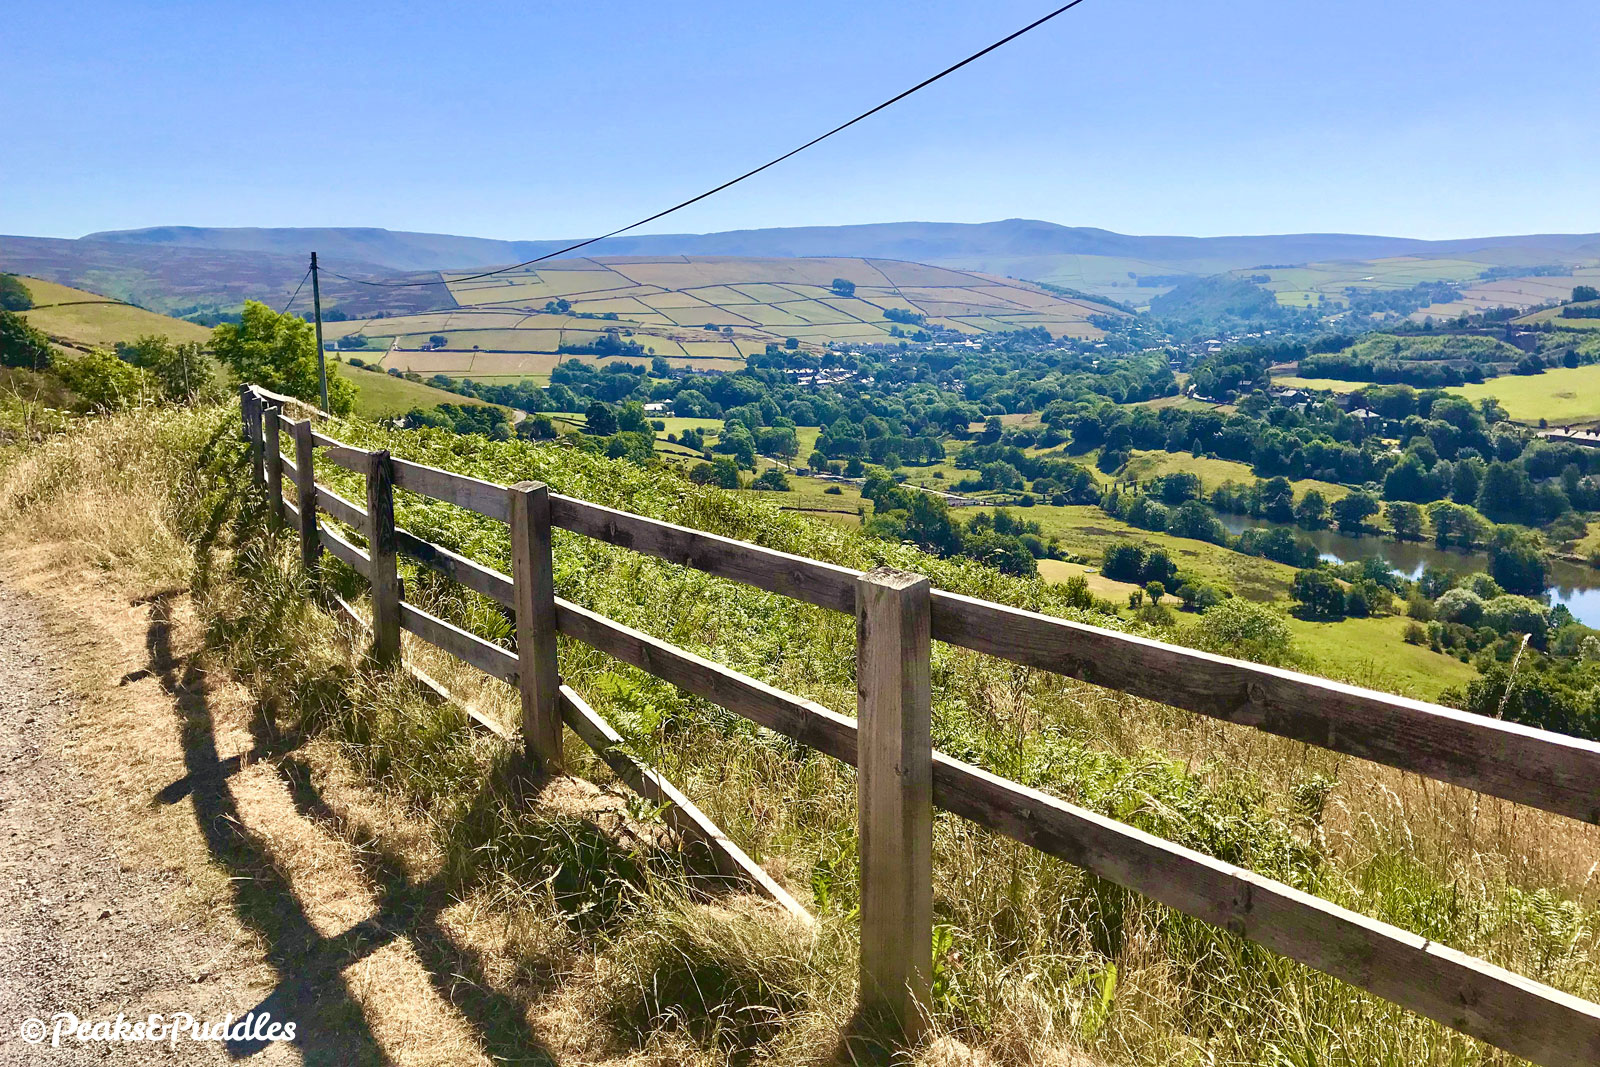 A stunning vista over the Sett Valley from the top of Sitch Lane to Hayfield and Kinder Scout.